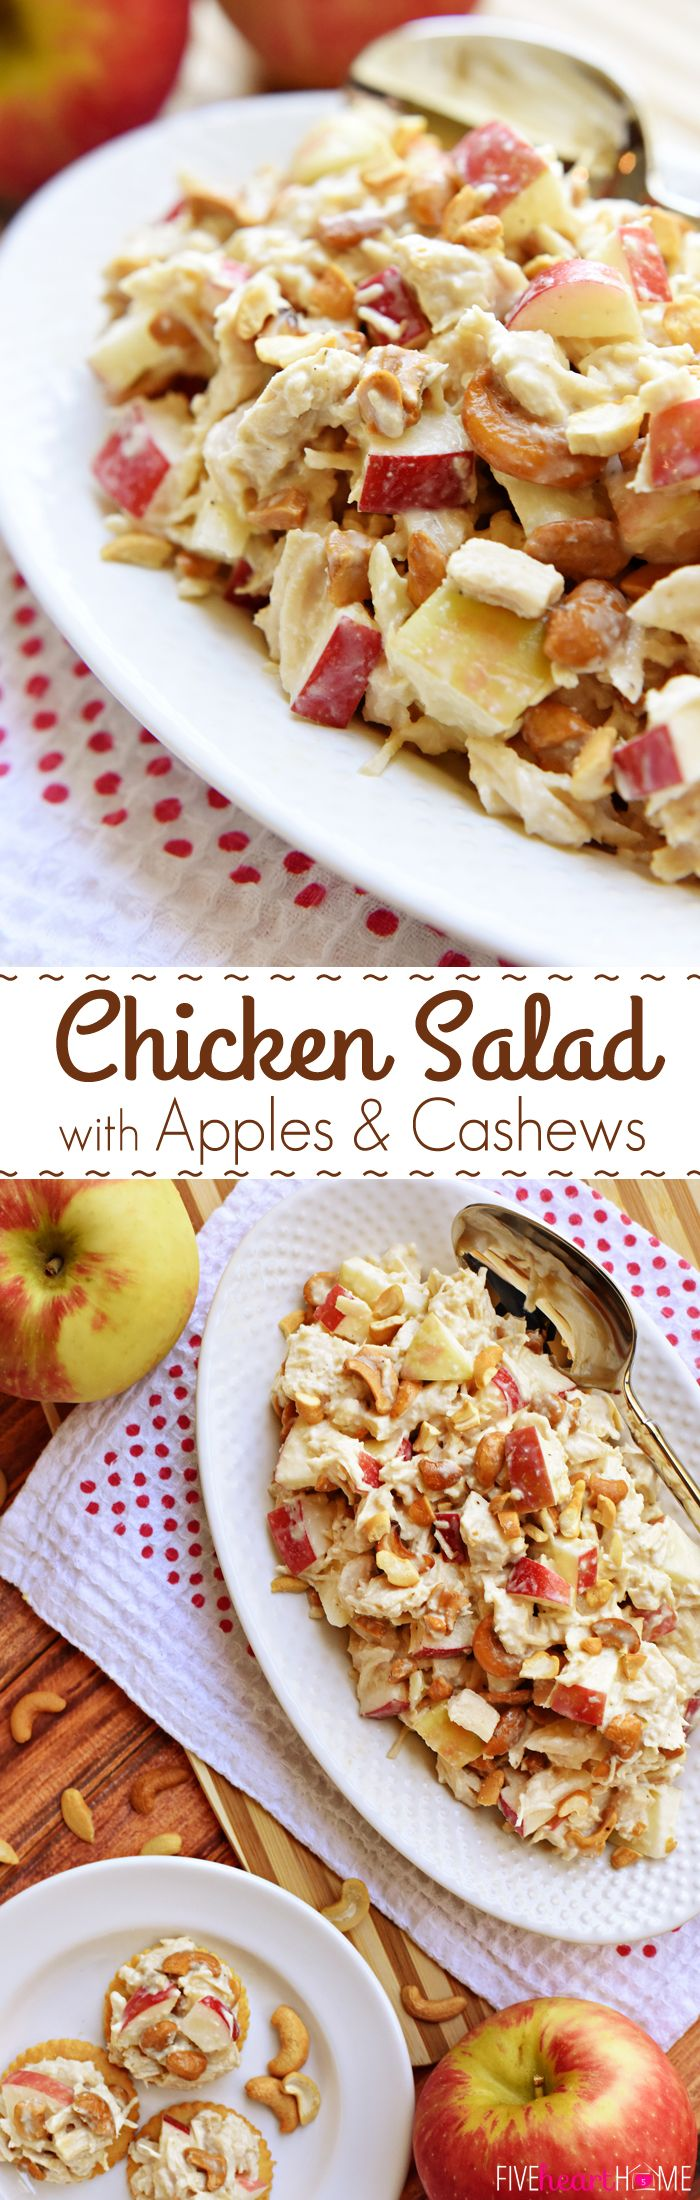 Chicken Salad with Apples & Cashews FoodBlogs.com